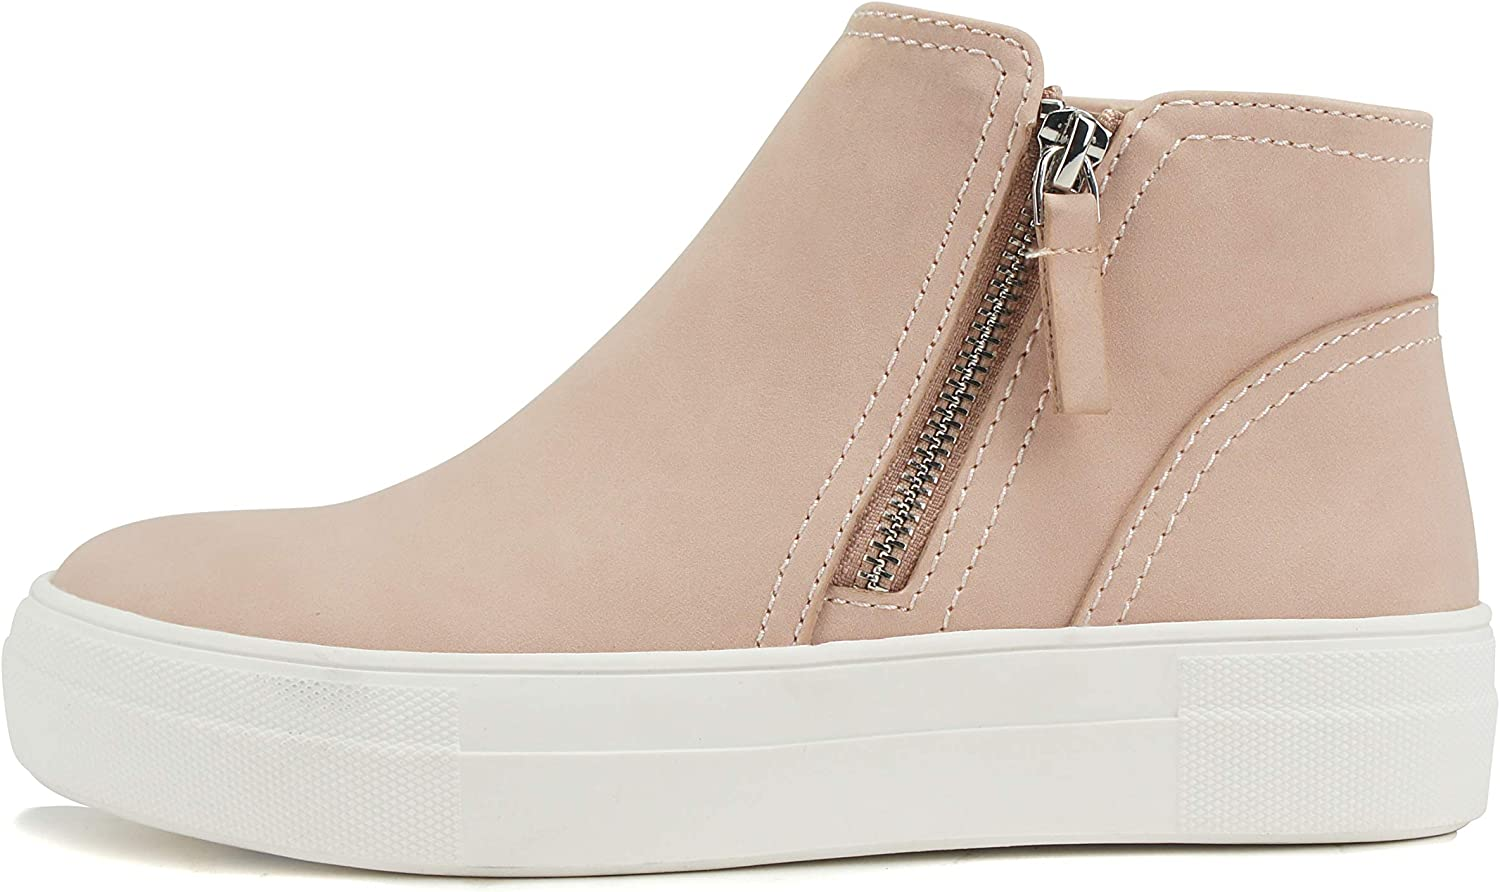 Soda Route Women High Top Fashion Sneaker Shoes with Padded Sole & Side Zipper